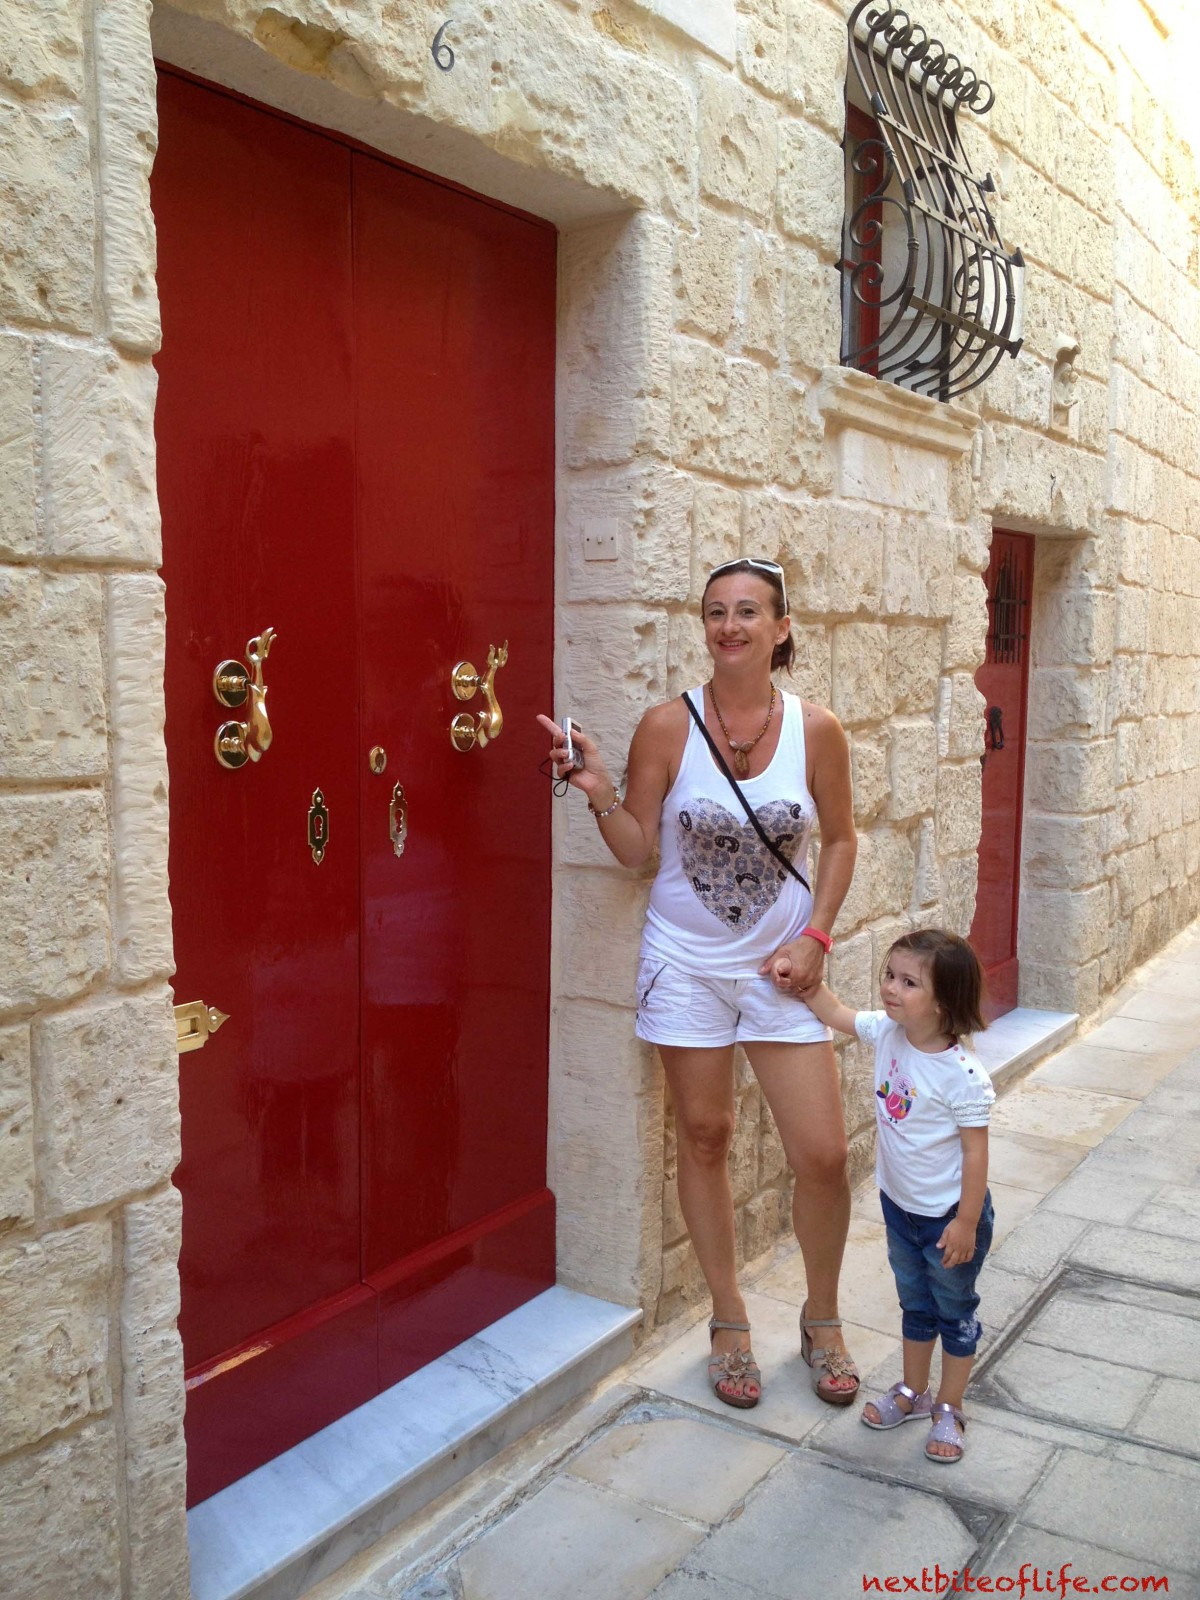 red door in mdina with mother and child